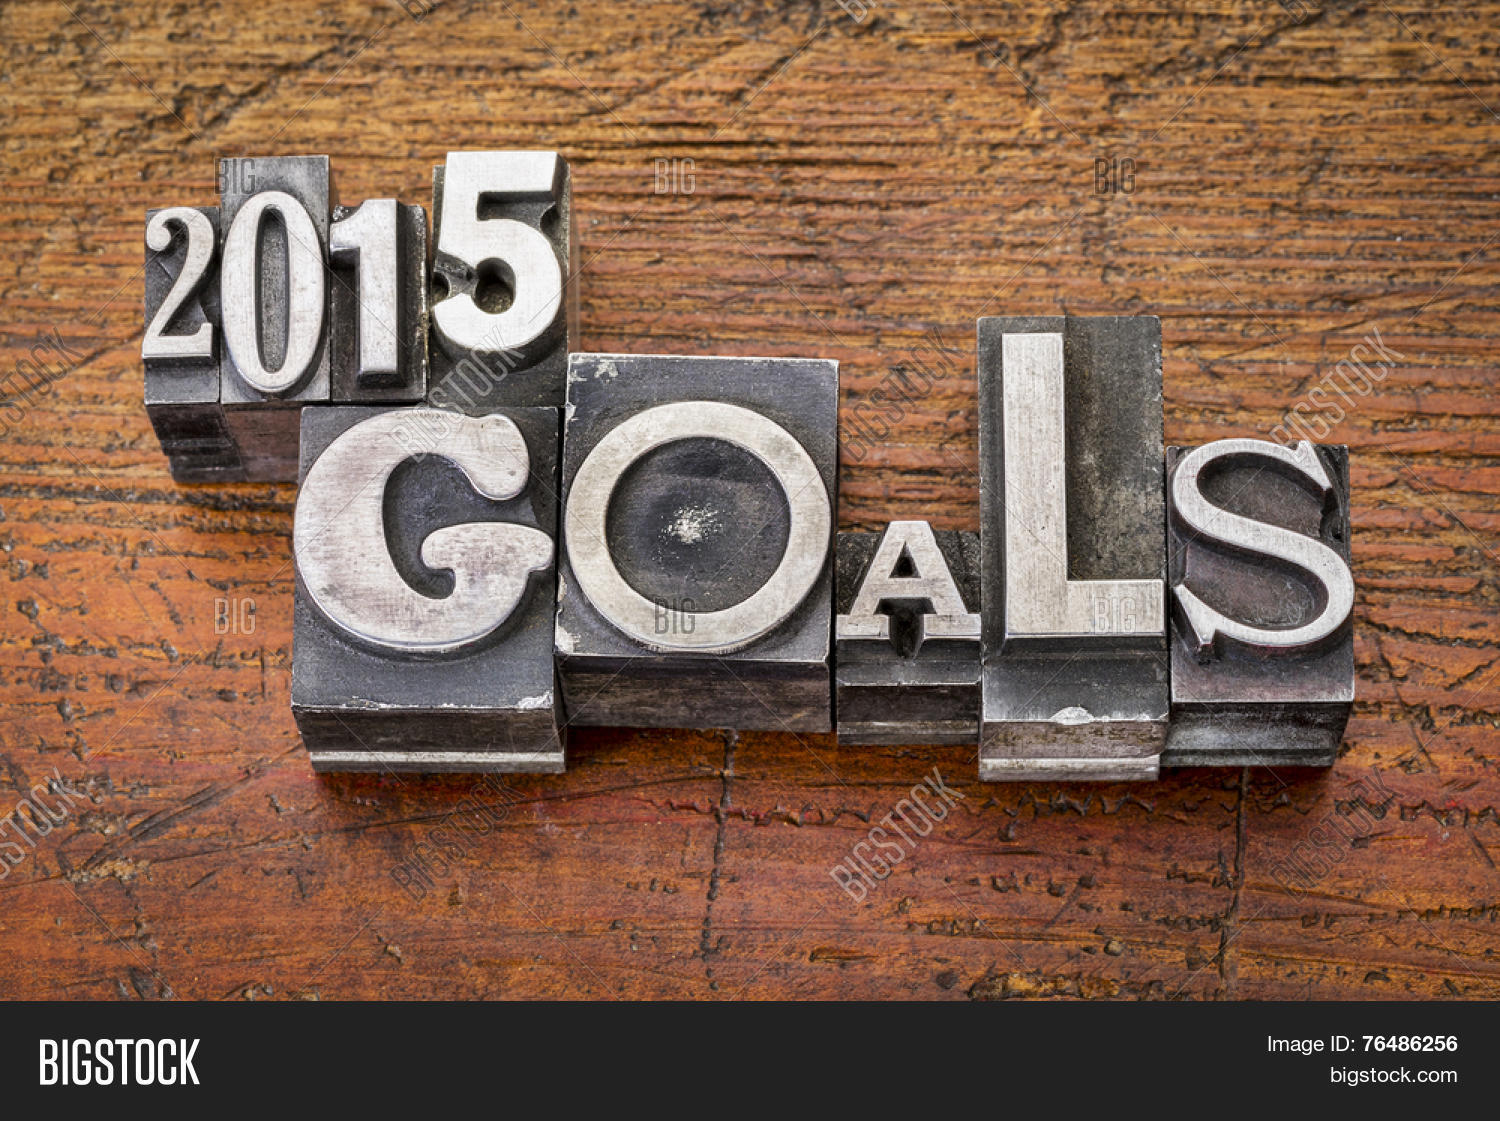 2015 goals new year resolution image amp photo bigstock